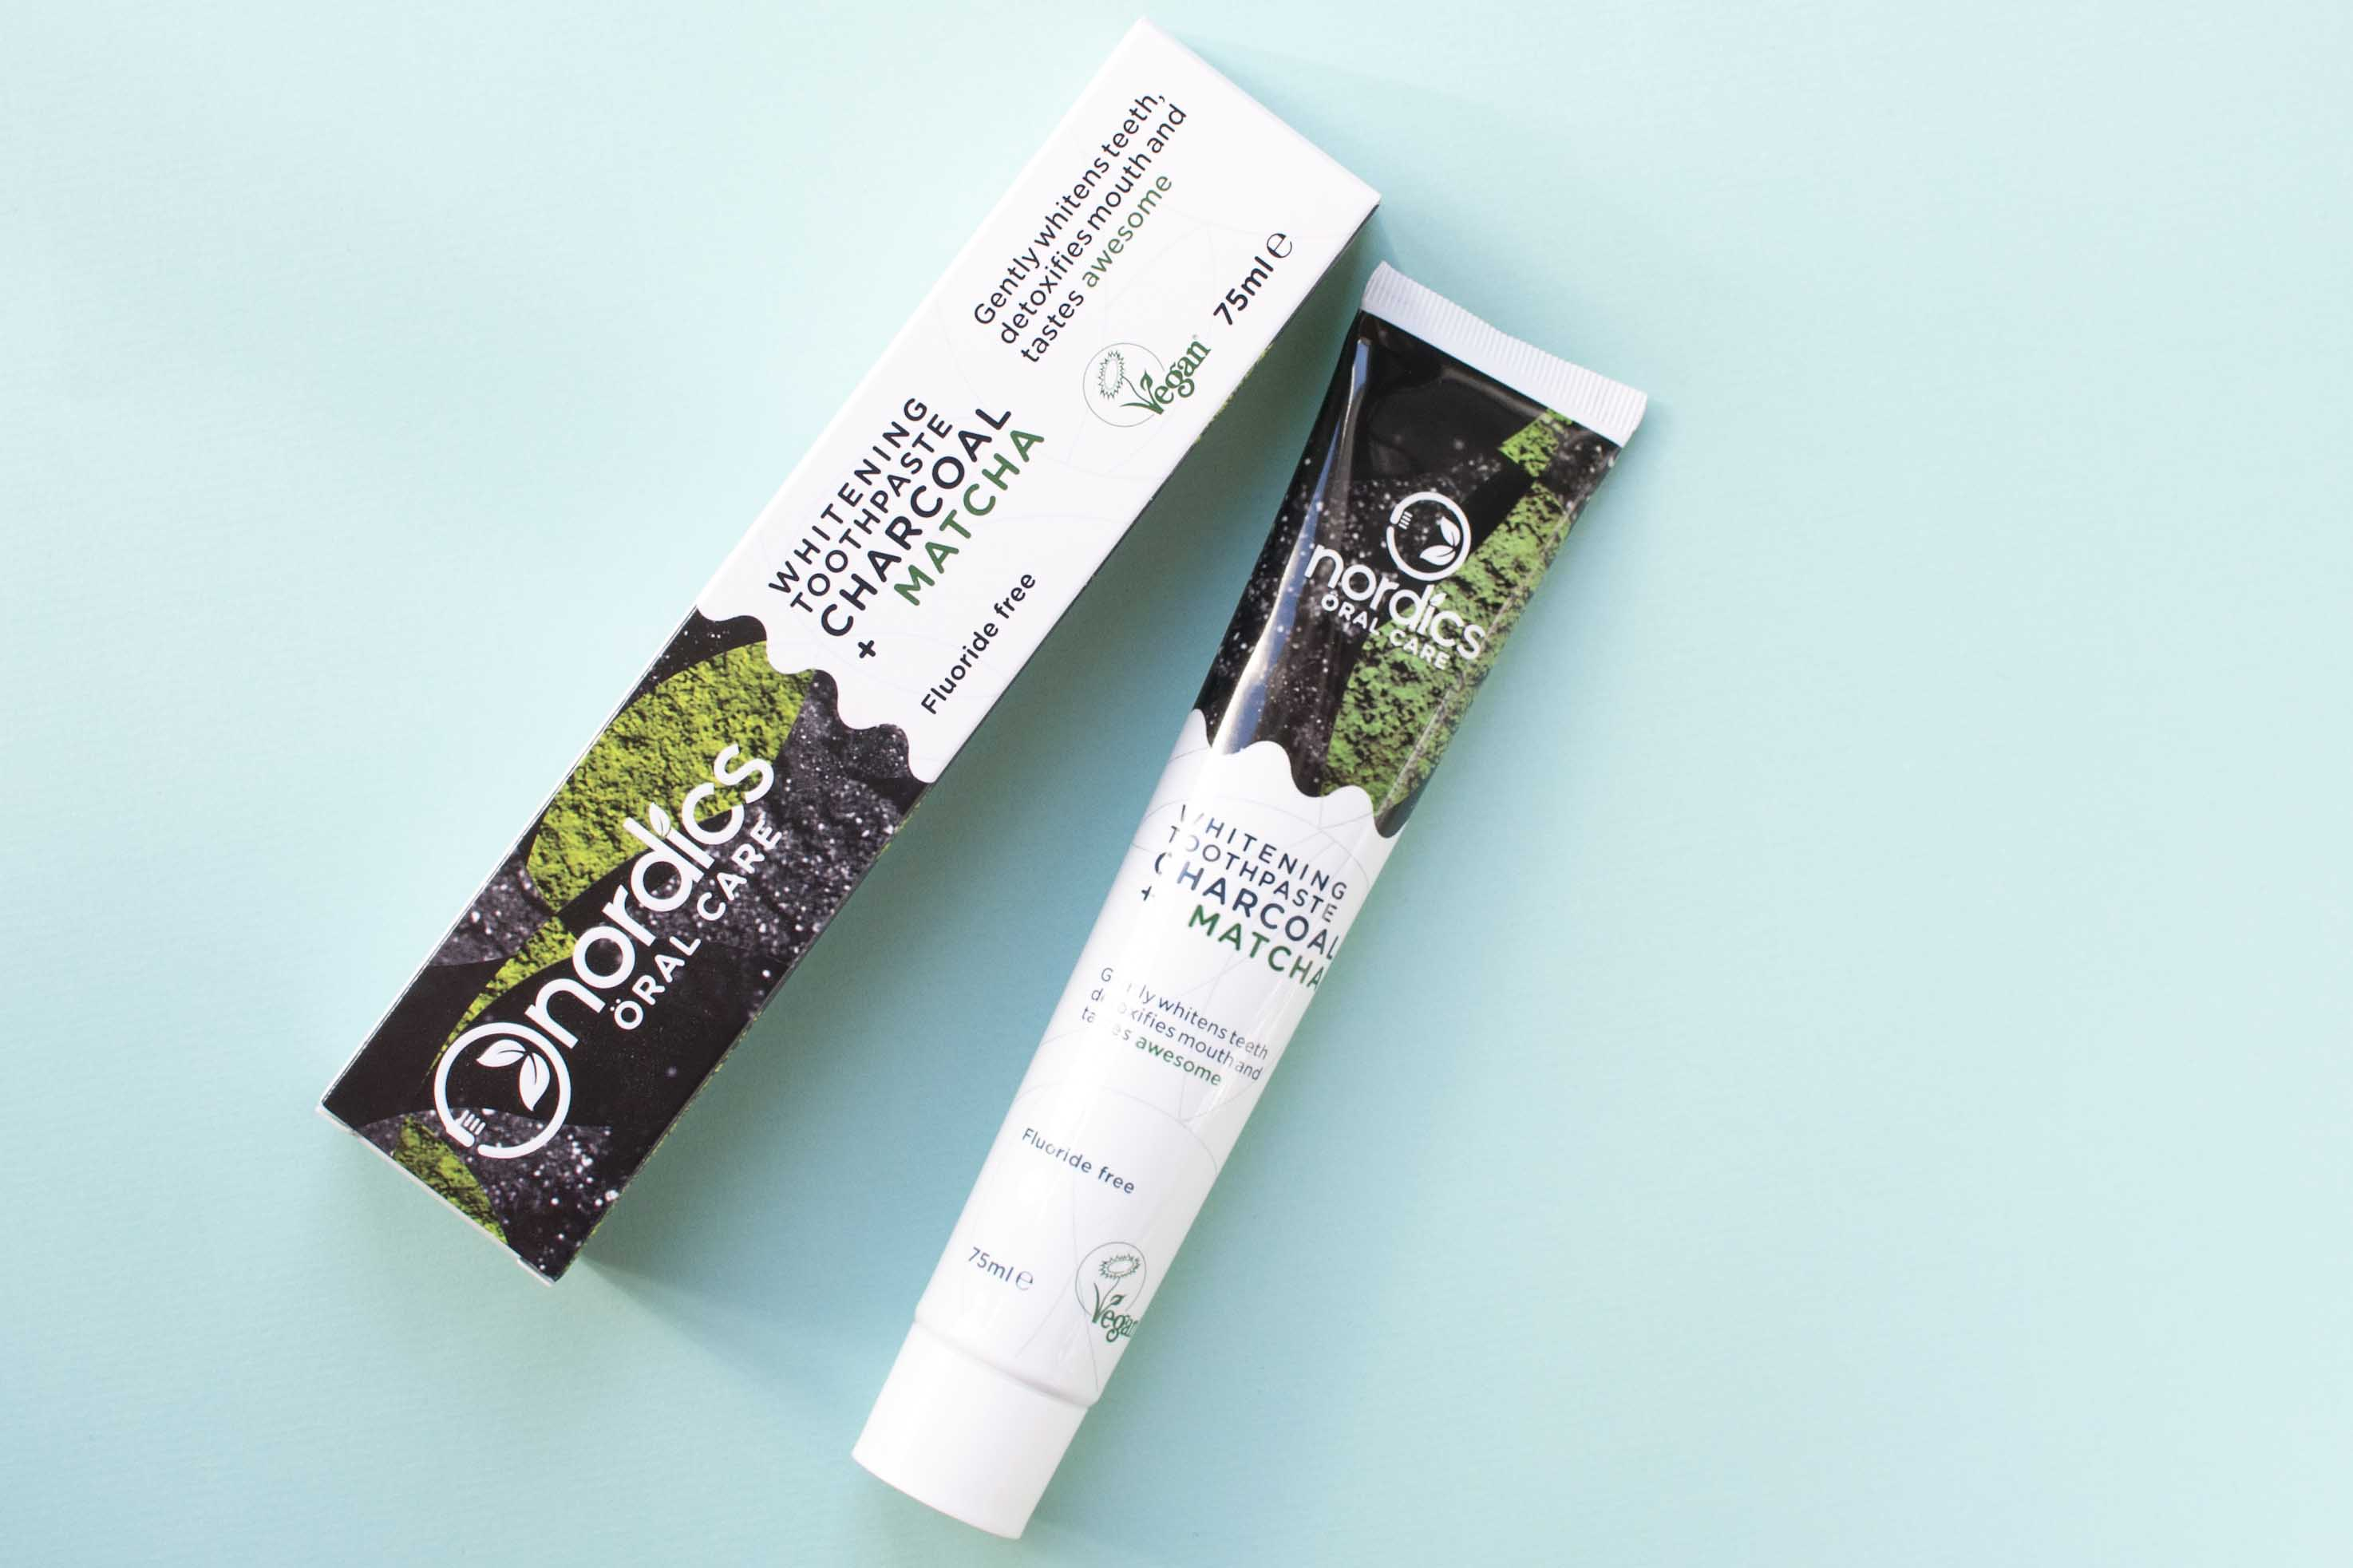 Review nordics oral care whitening toothpaste charcoal matcha